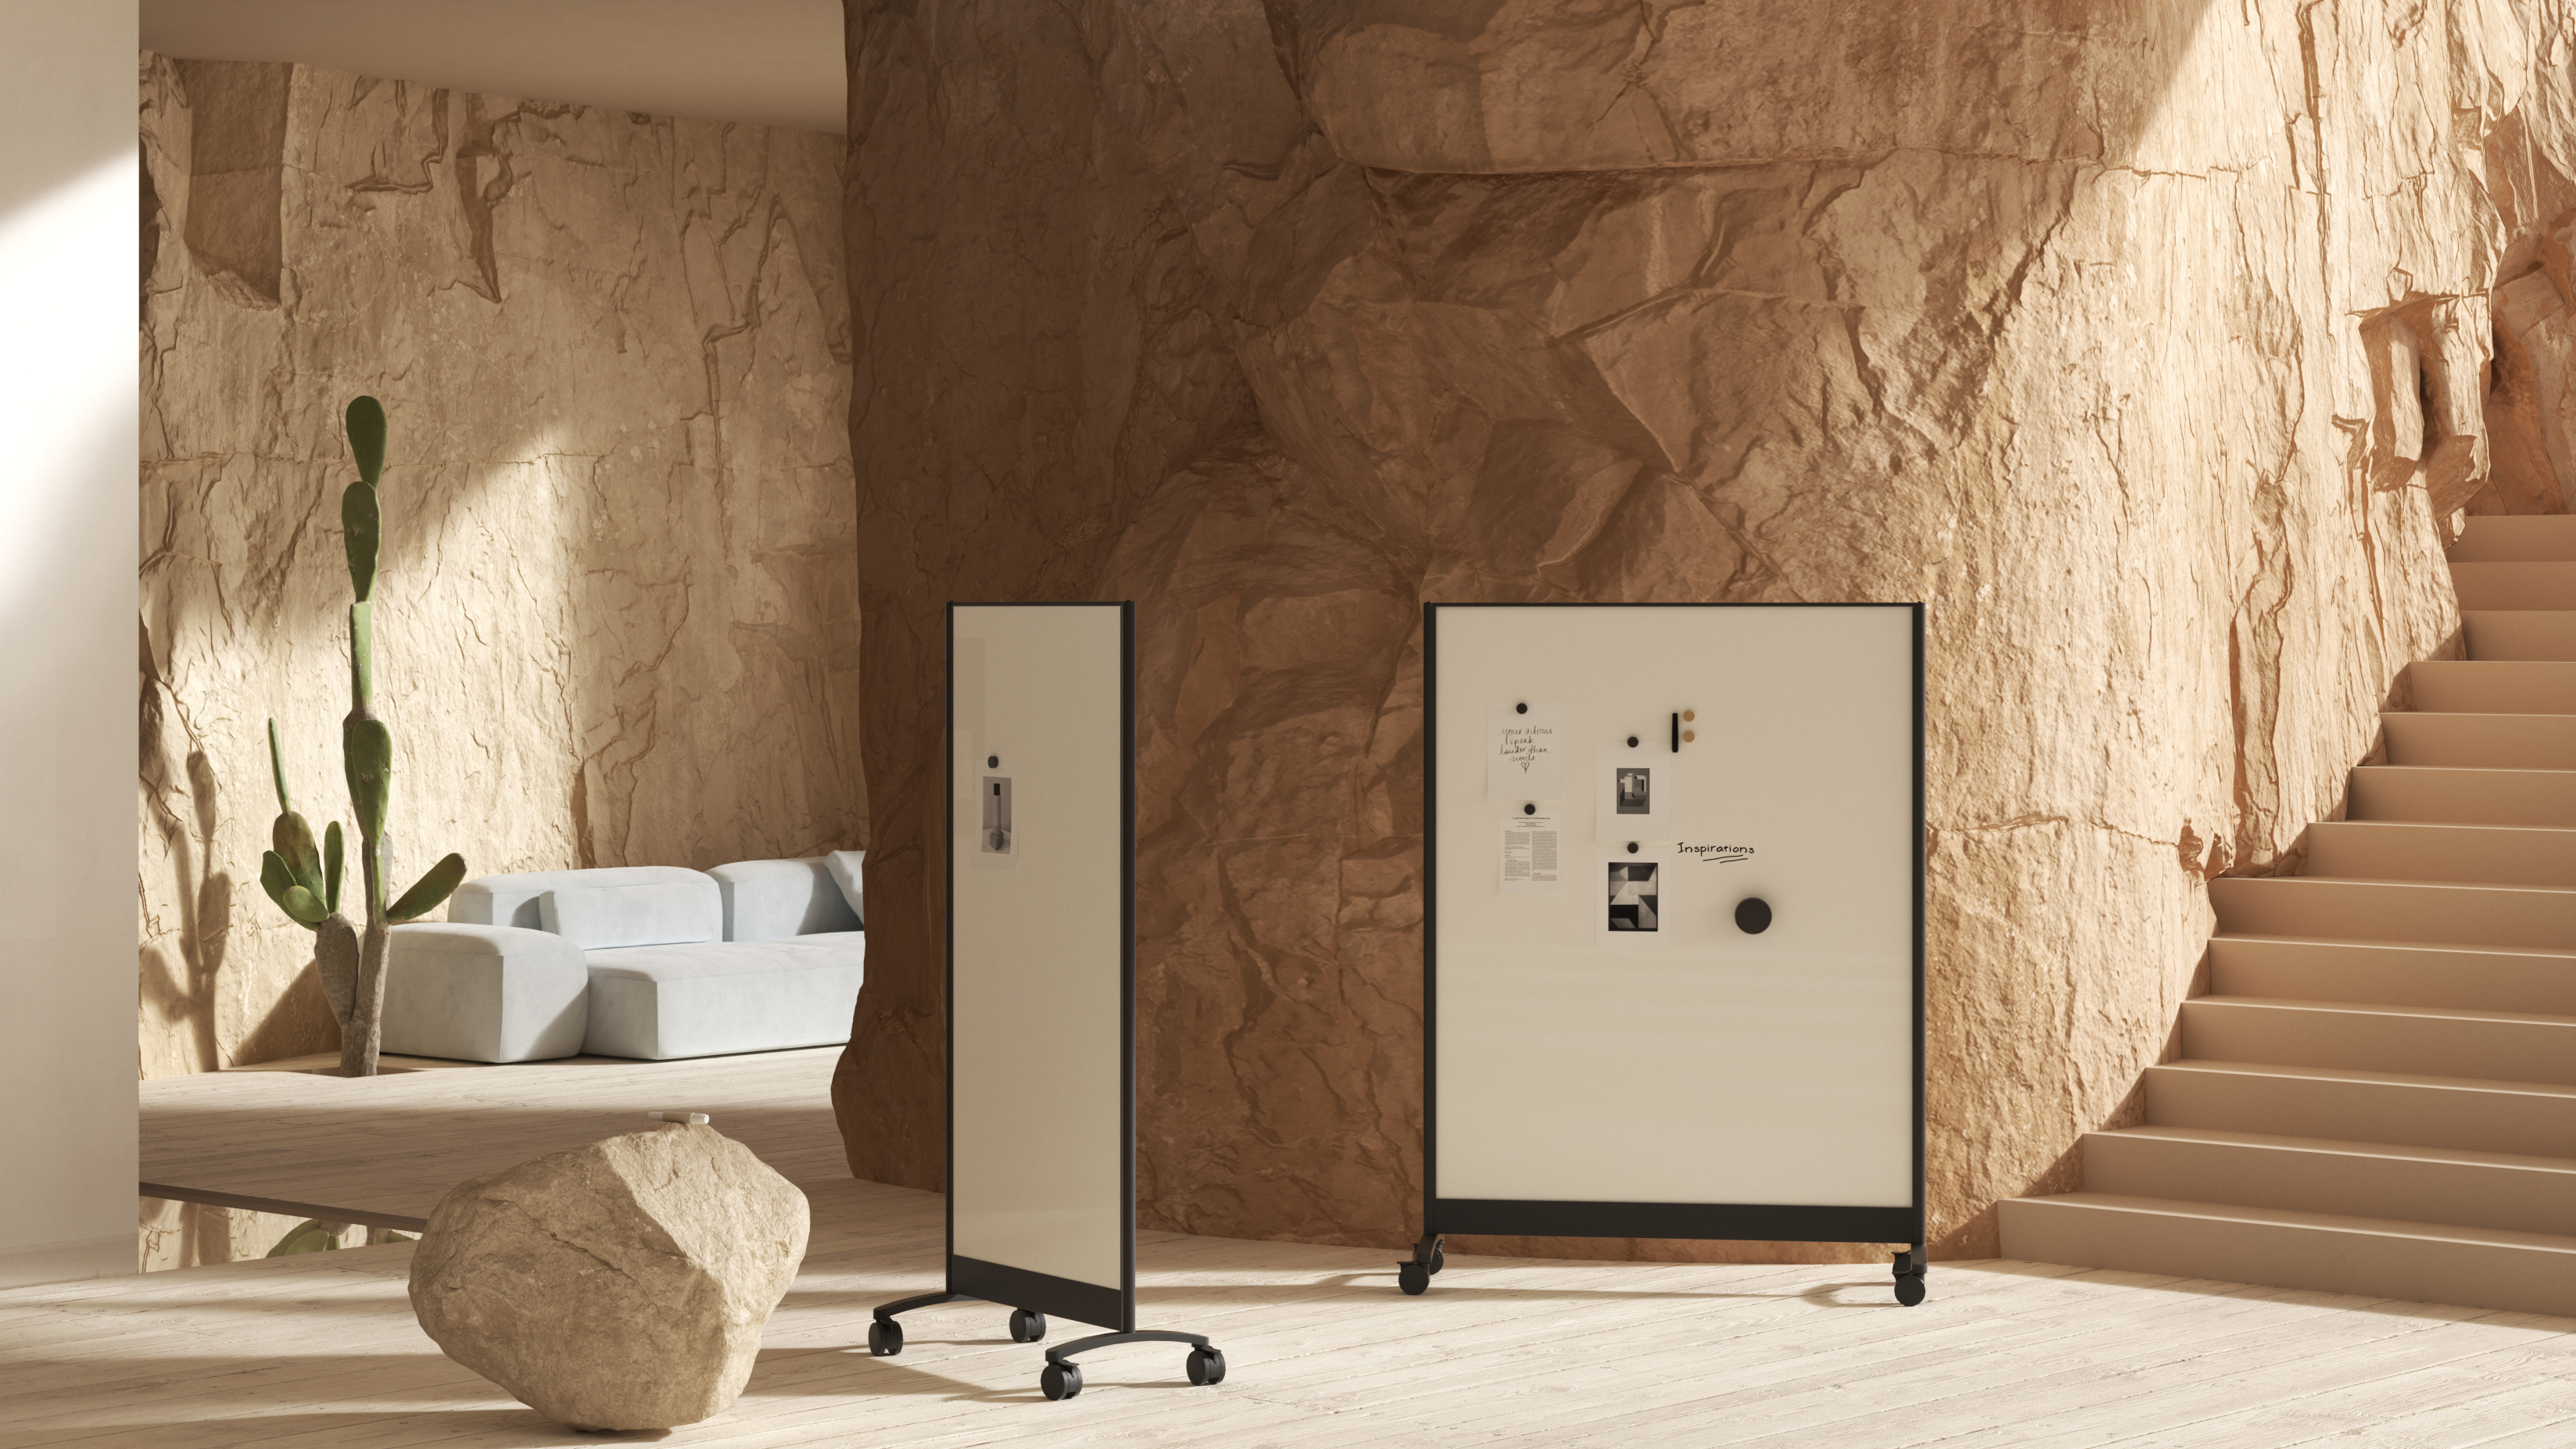 Two mobile dry erase boards in front of wall made of rock